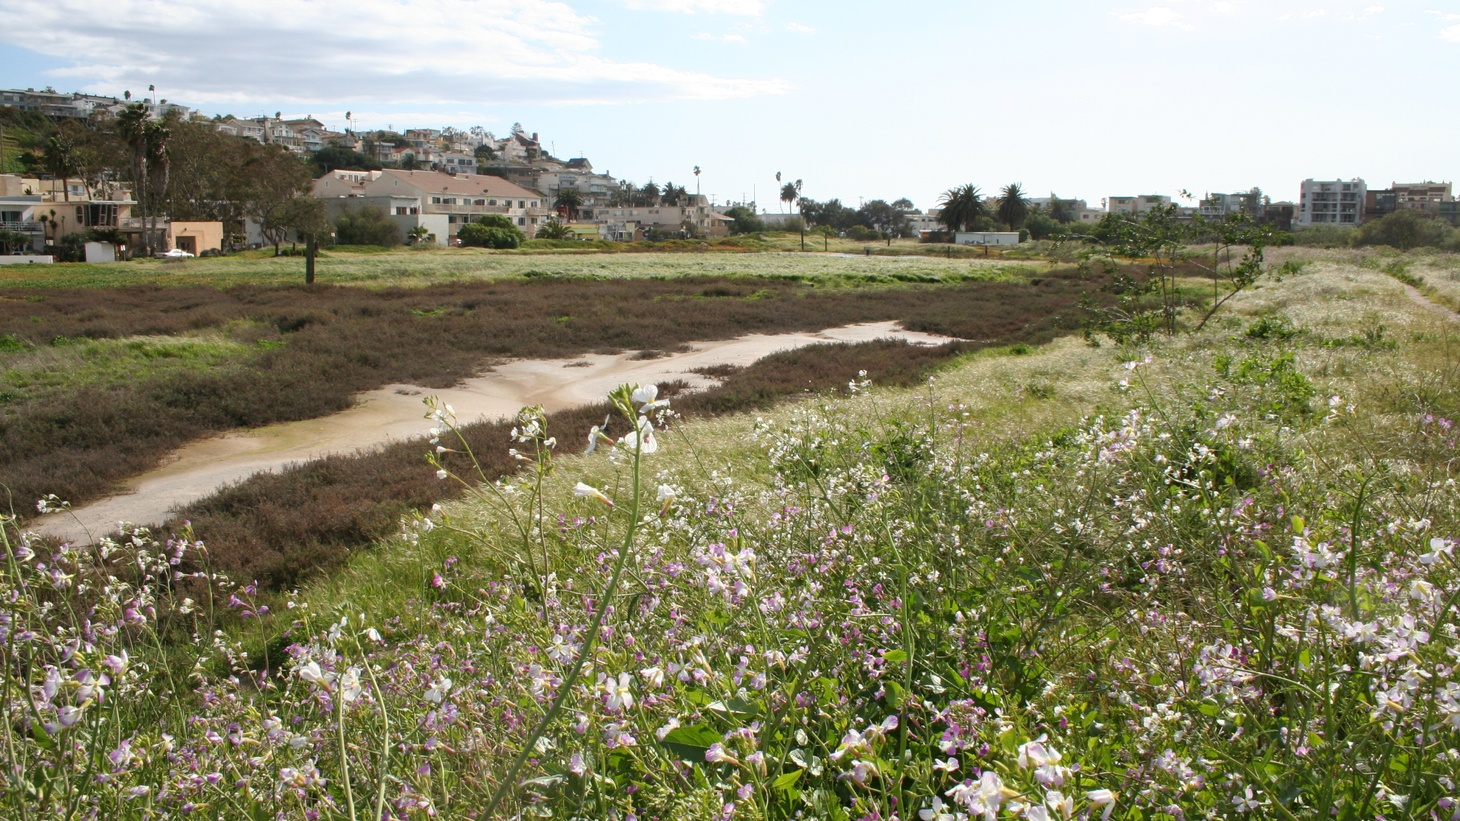 A stretch of the Ballona Wetlands in Los Angeles in 2010.